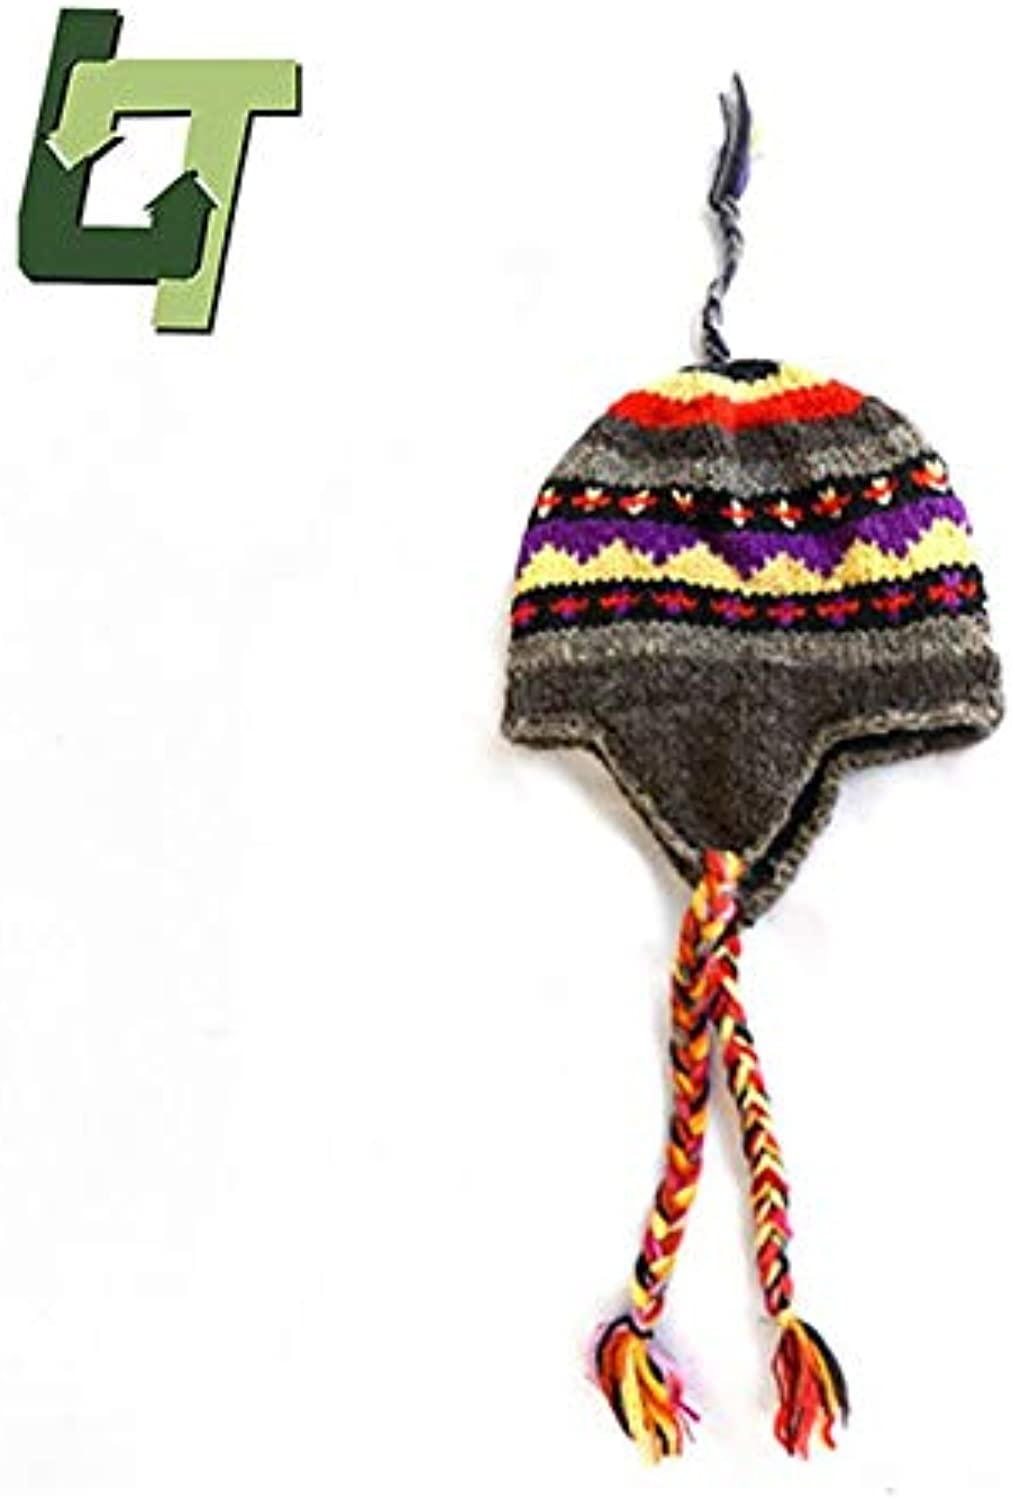 INFIKNIGHT INF Journey Wish Forest Outdoor Hat Nepal Characterist Handmade Folk Style Knit Warm earmuffs Hat colorful Ponytail Hiking Hat